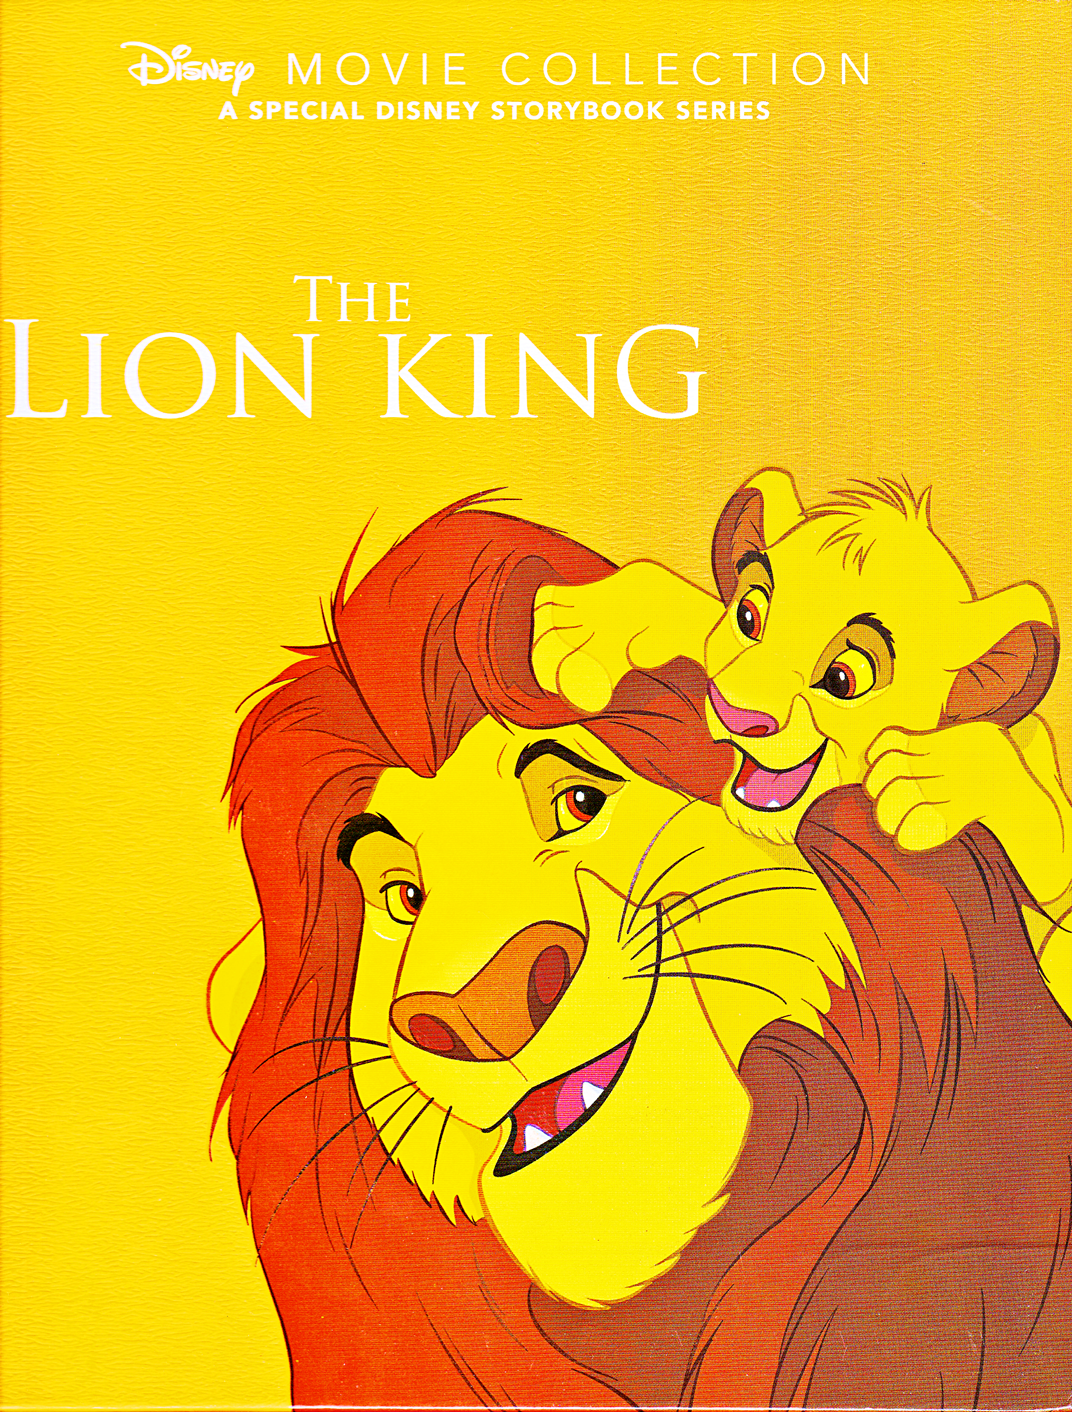 Walt Disney Book Scans – The Lion King: The Story of Simba (English Version)